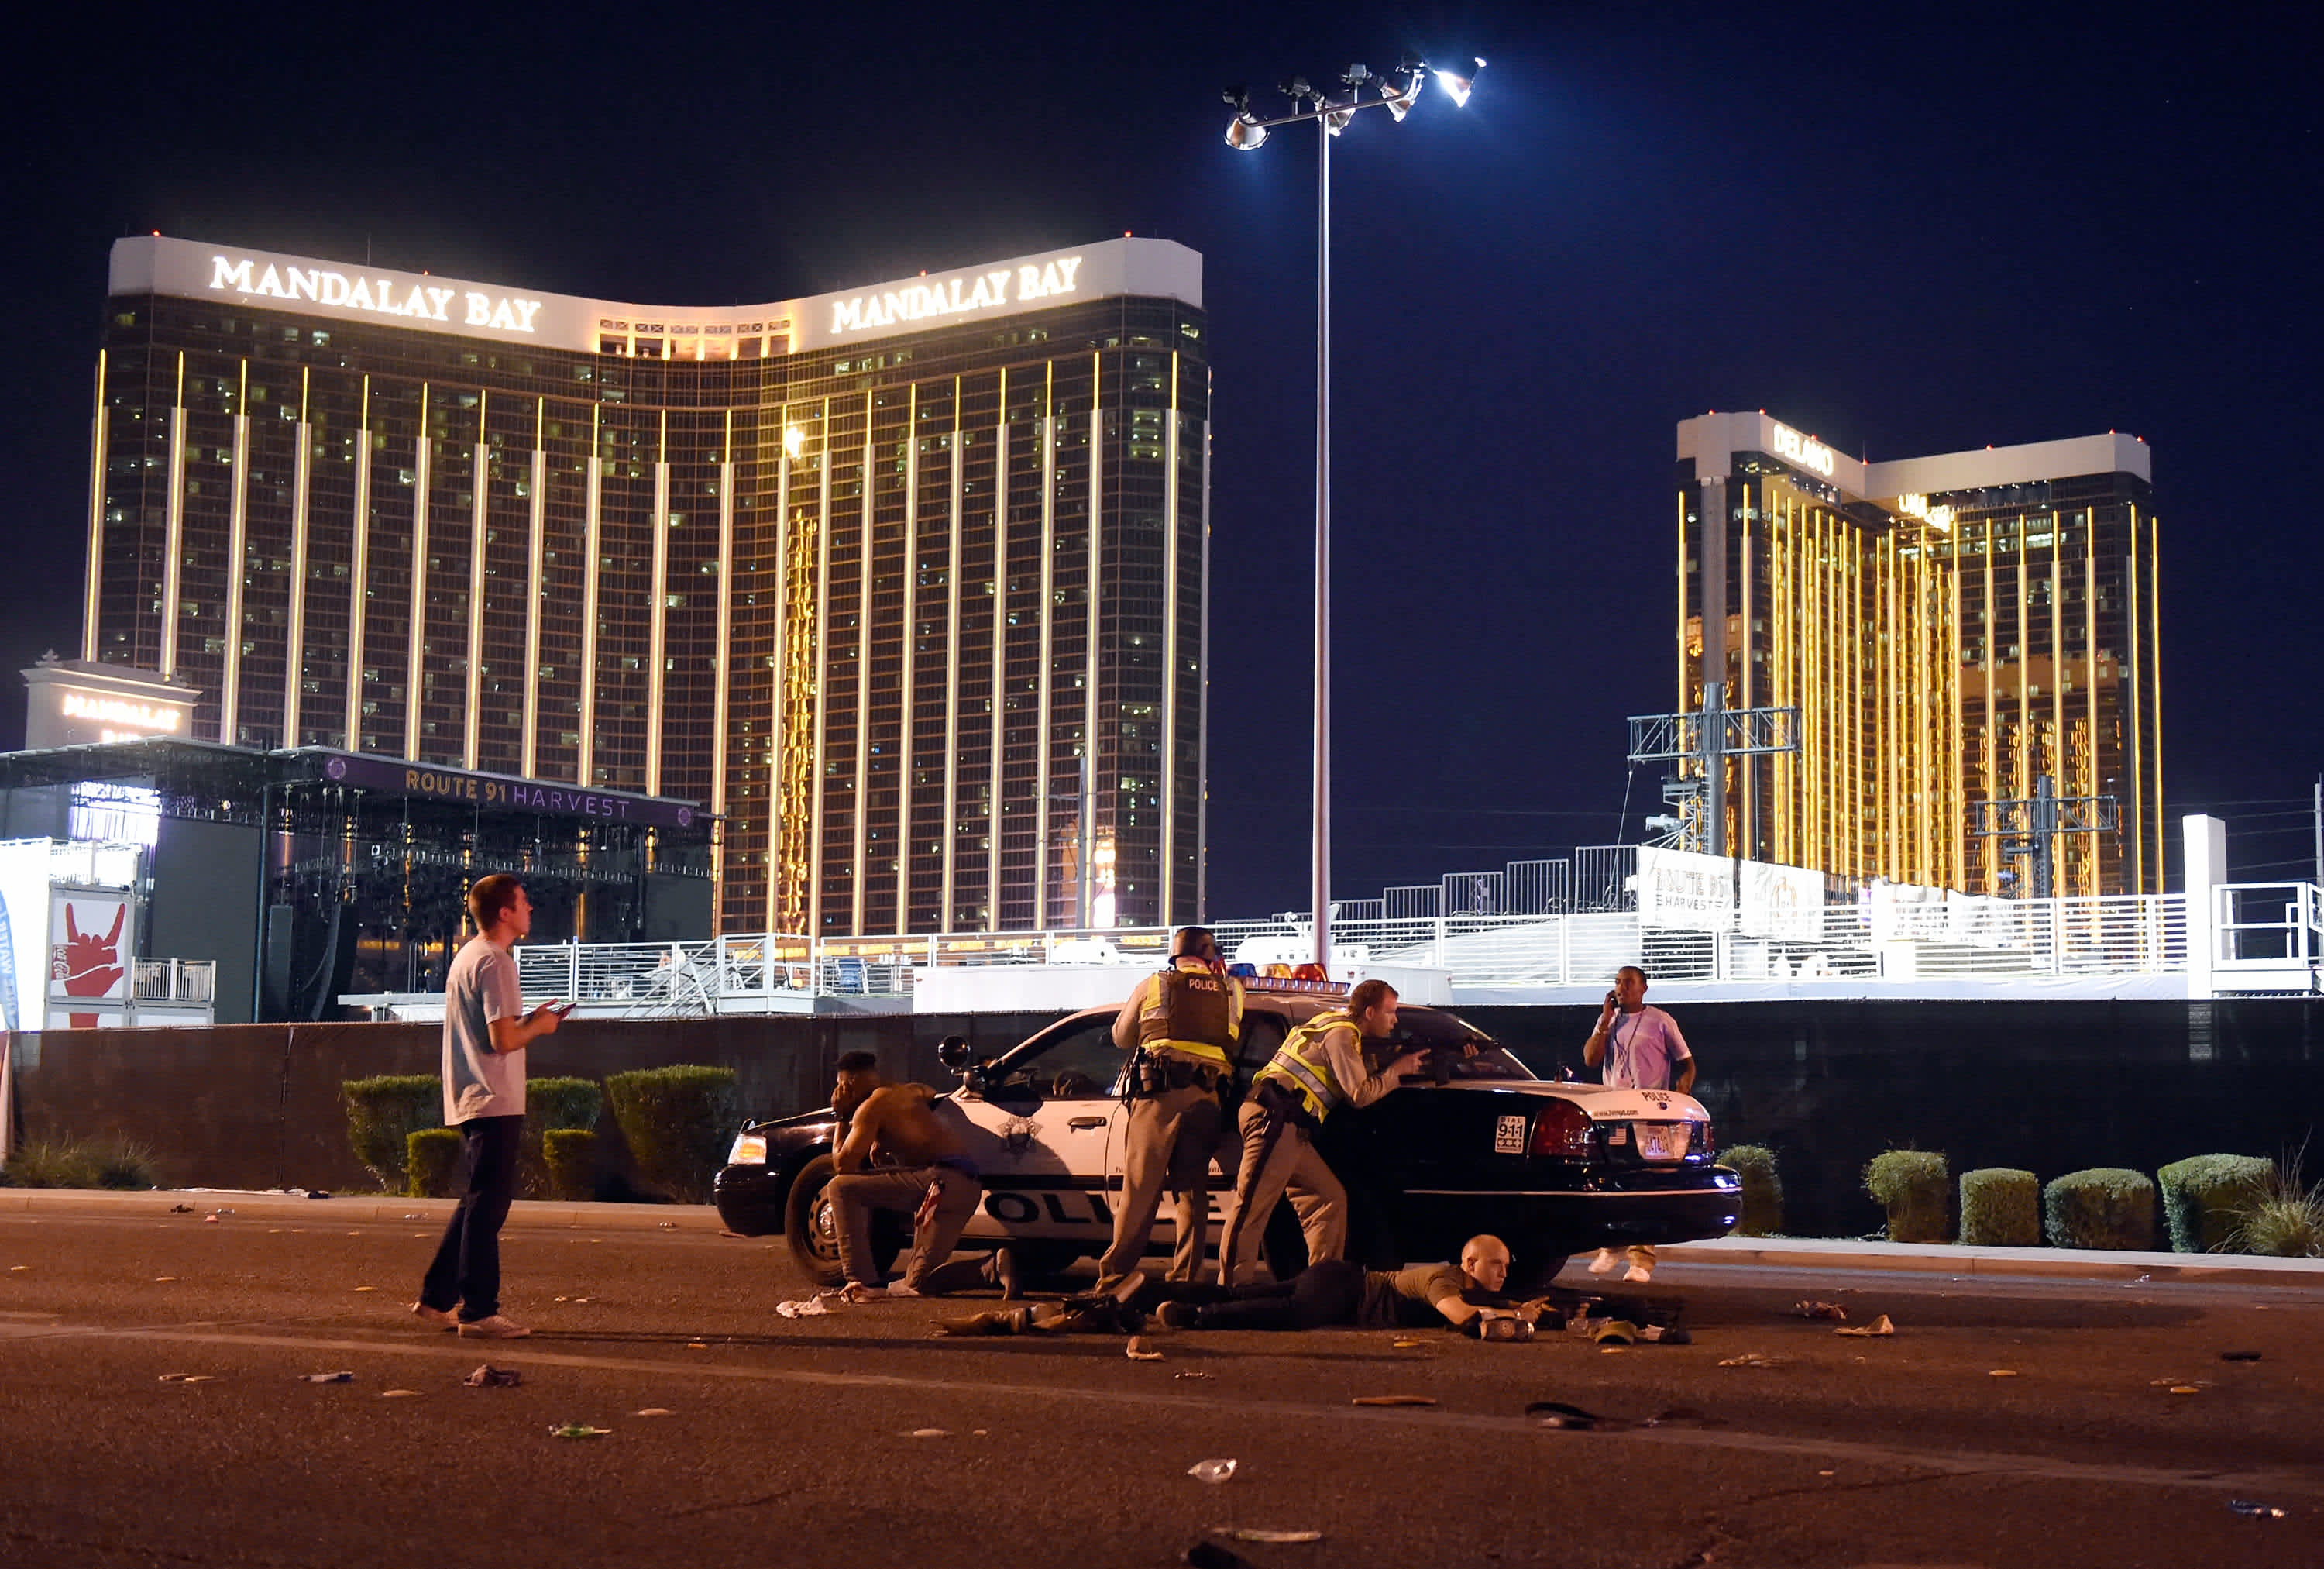 Las Vegas police stand guard along the streets of Las Vegas after a mass shooting (DAVID BECKER / GETTY IMAGES / AFP)